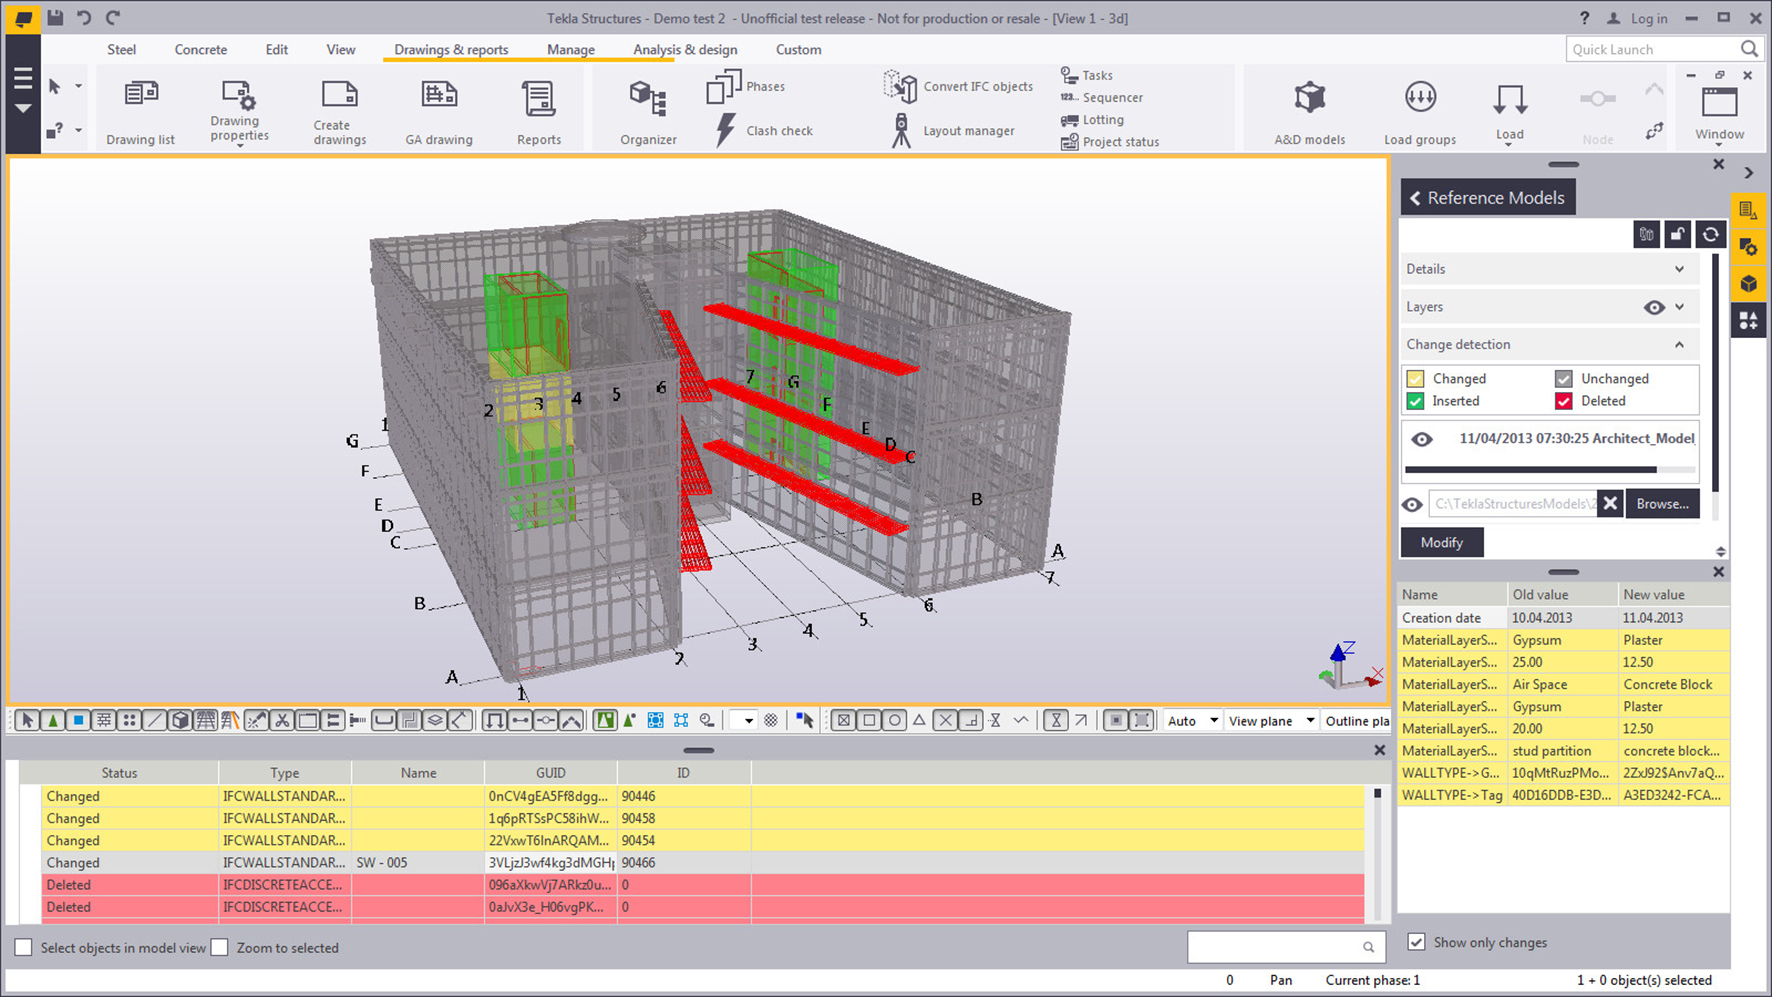 bim fine management perspective Hore, alan v, use of building information modelling in responding to low carbon construction innovations: an irish perspective (2012) parliament since the 19th may 2010 and avoid crippling fines which could prove detrimental to an bim in managing low carbon construction in ireland.